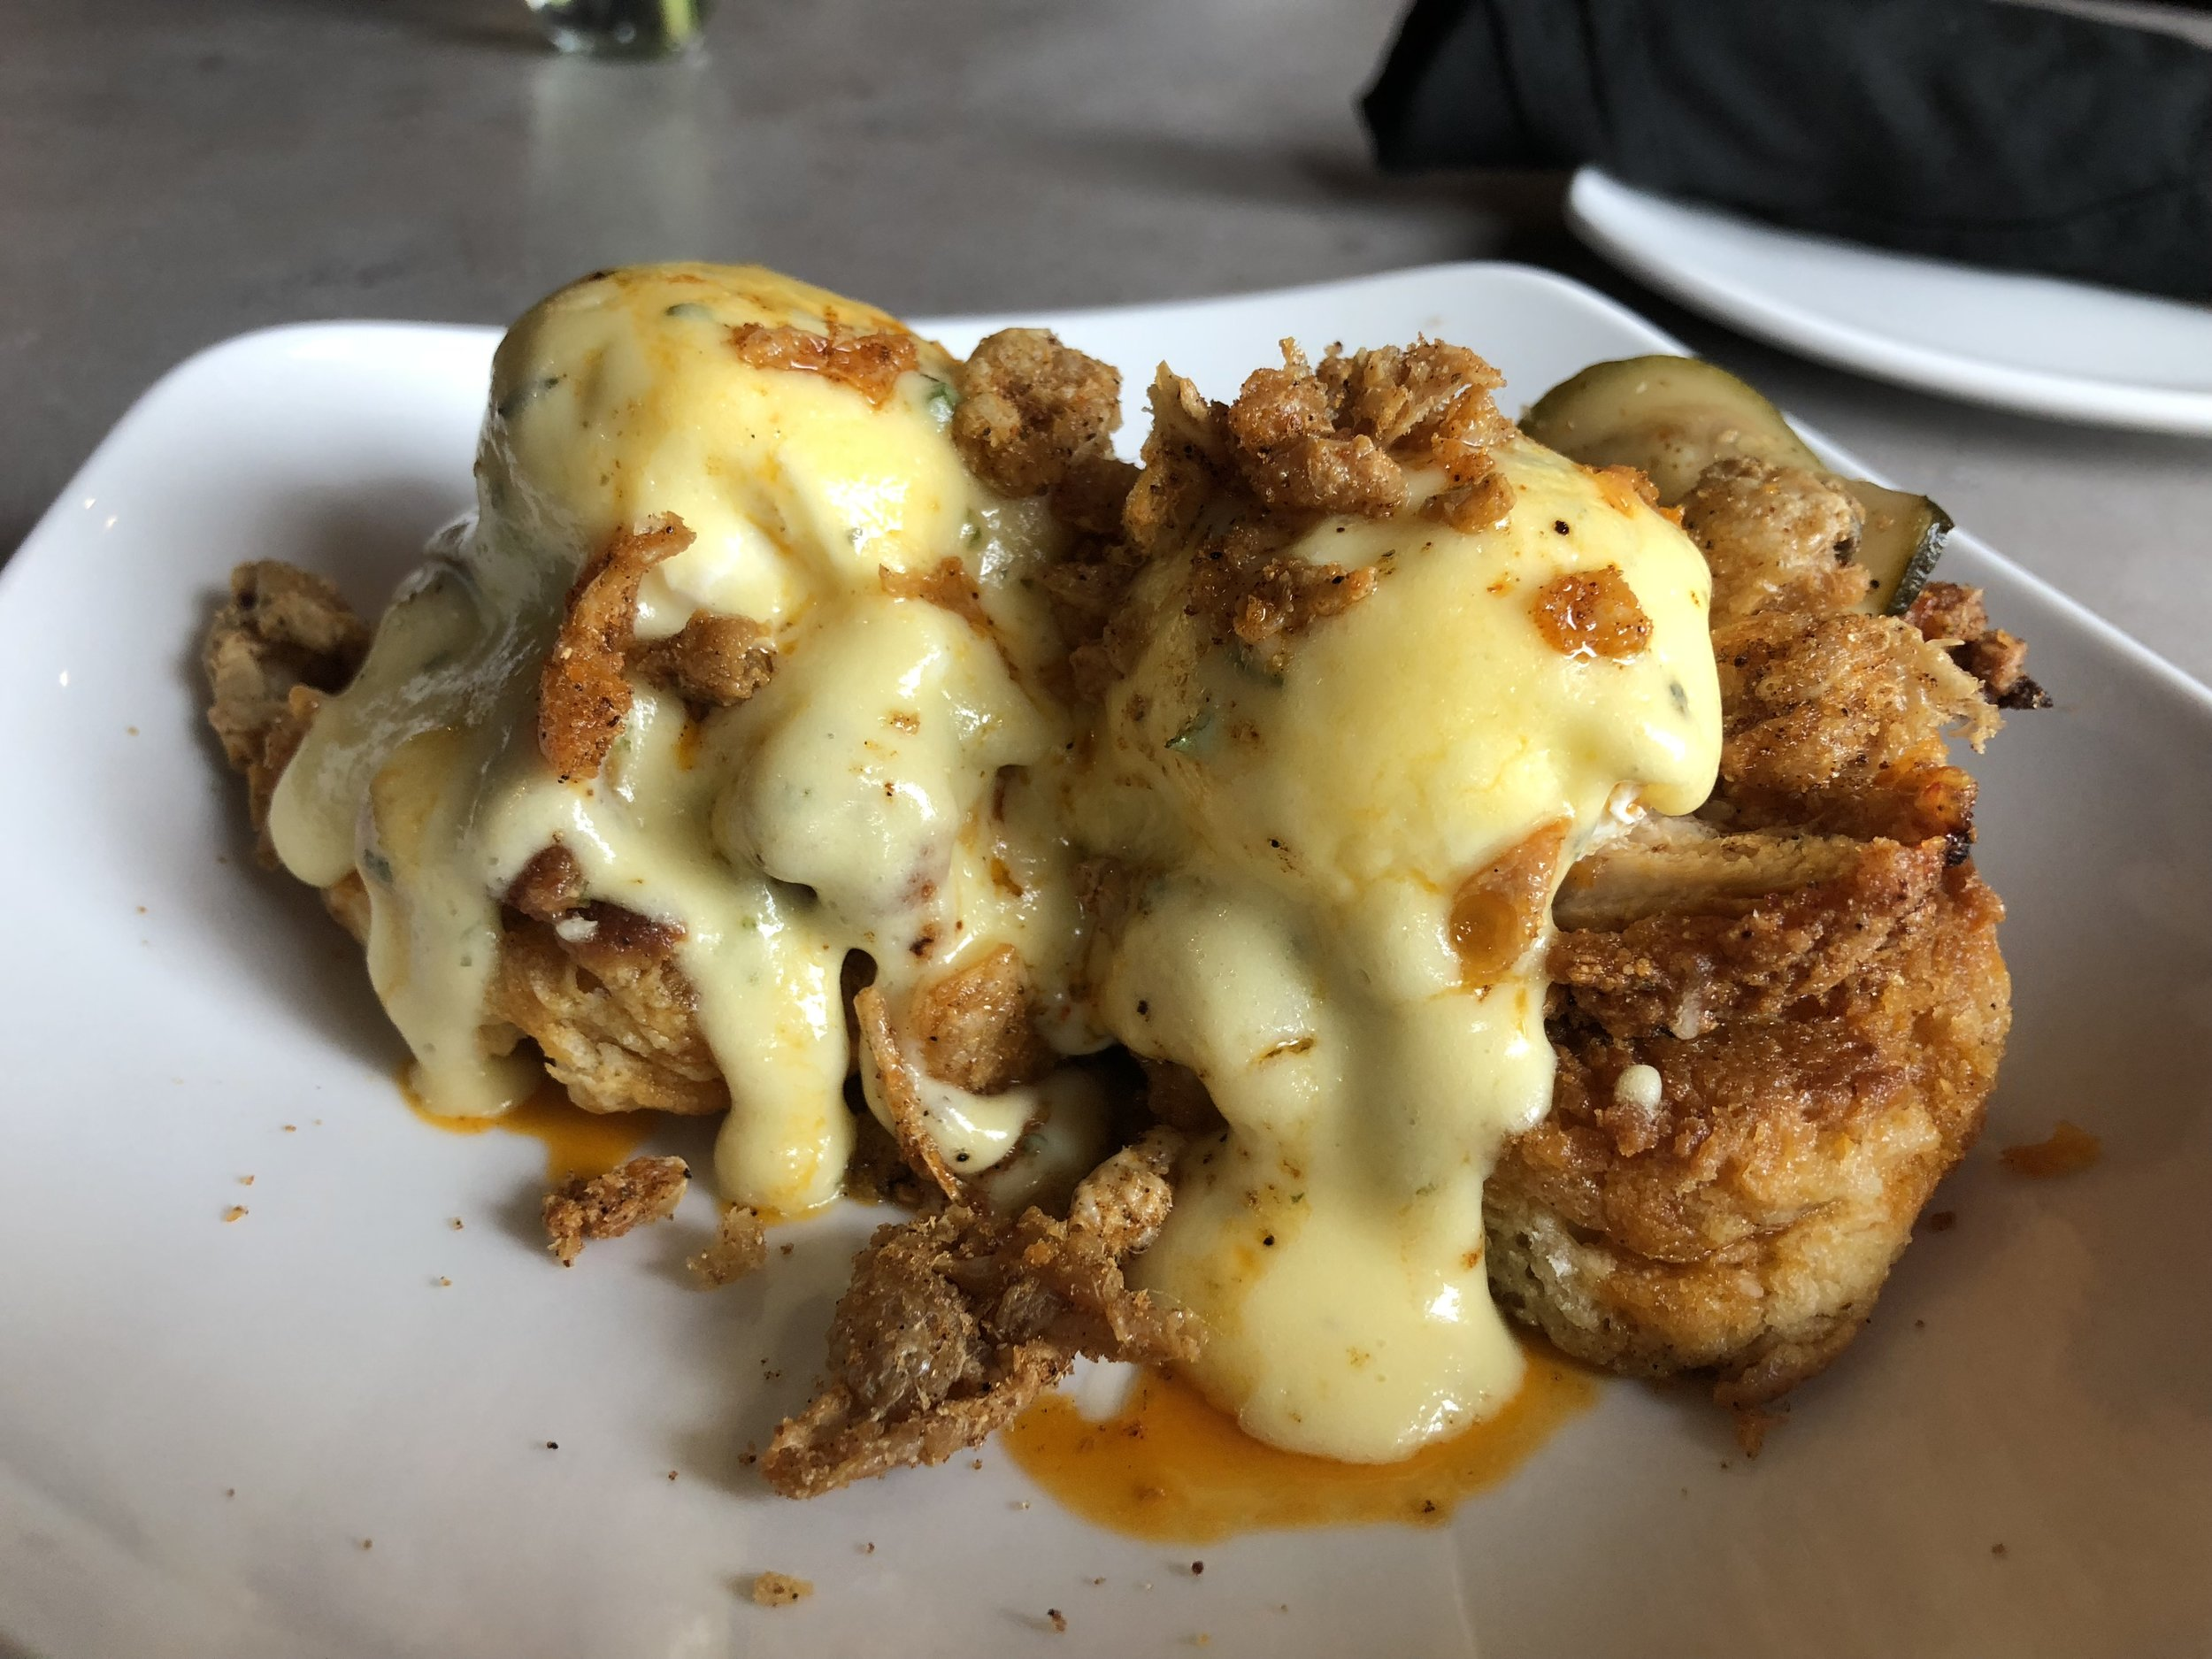 Hot Chicken Benedict - Hot fried chicken, buttermilk biscuits, poached eggs, herb hollandaise, zucchini picklesFabulously spicy and flavorful. A great twist on a traditional Benedict.